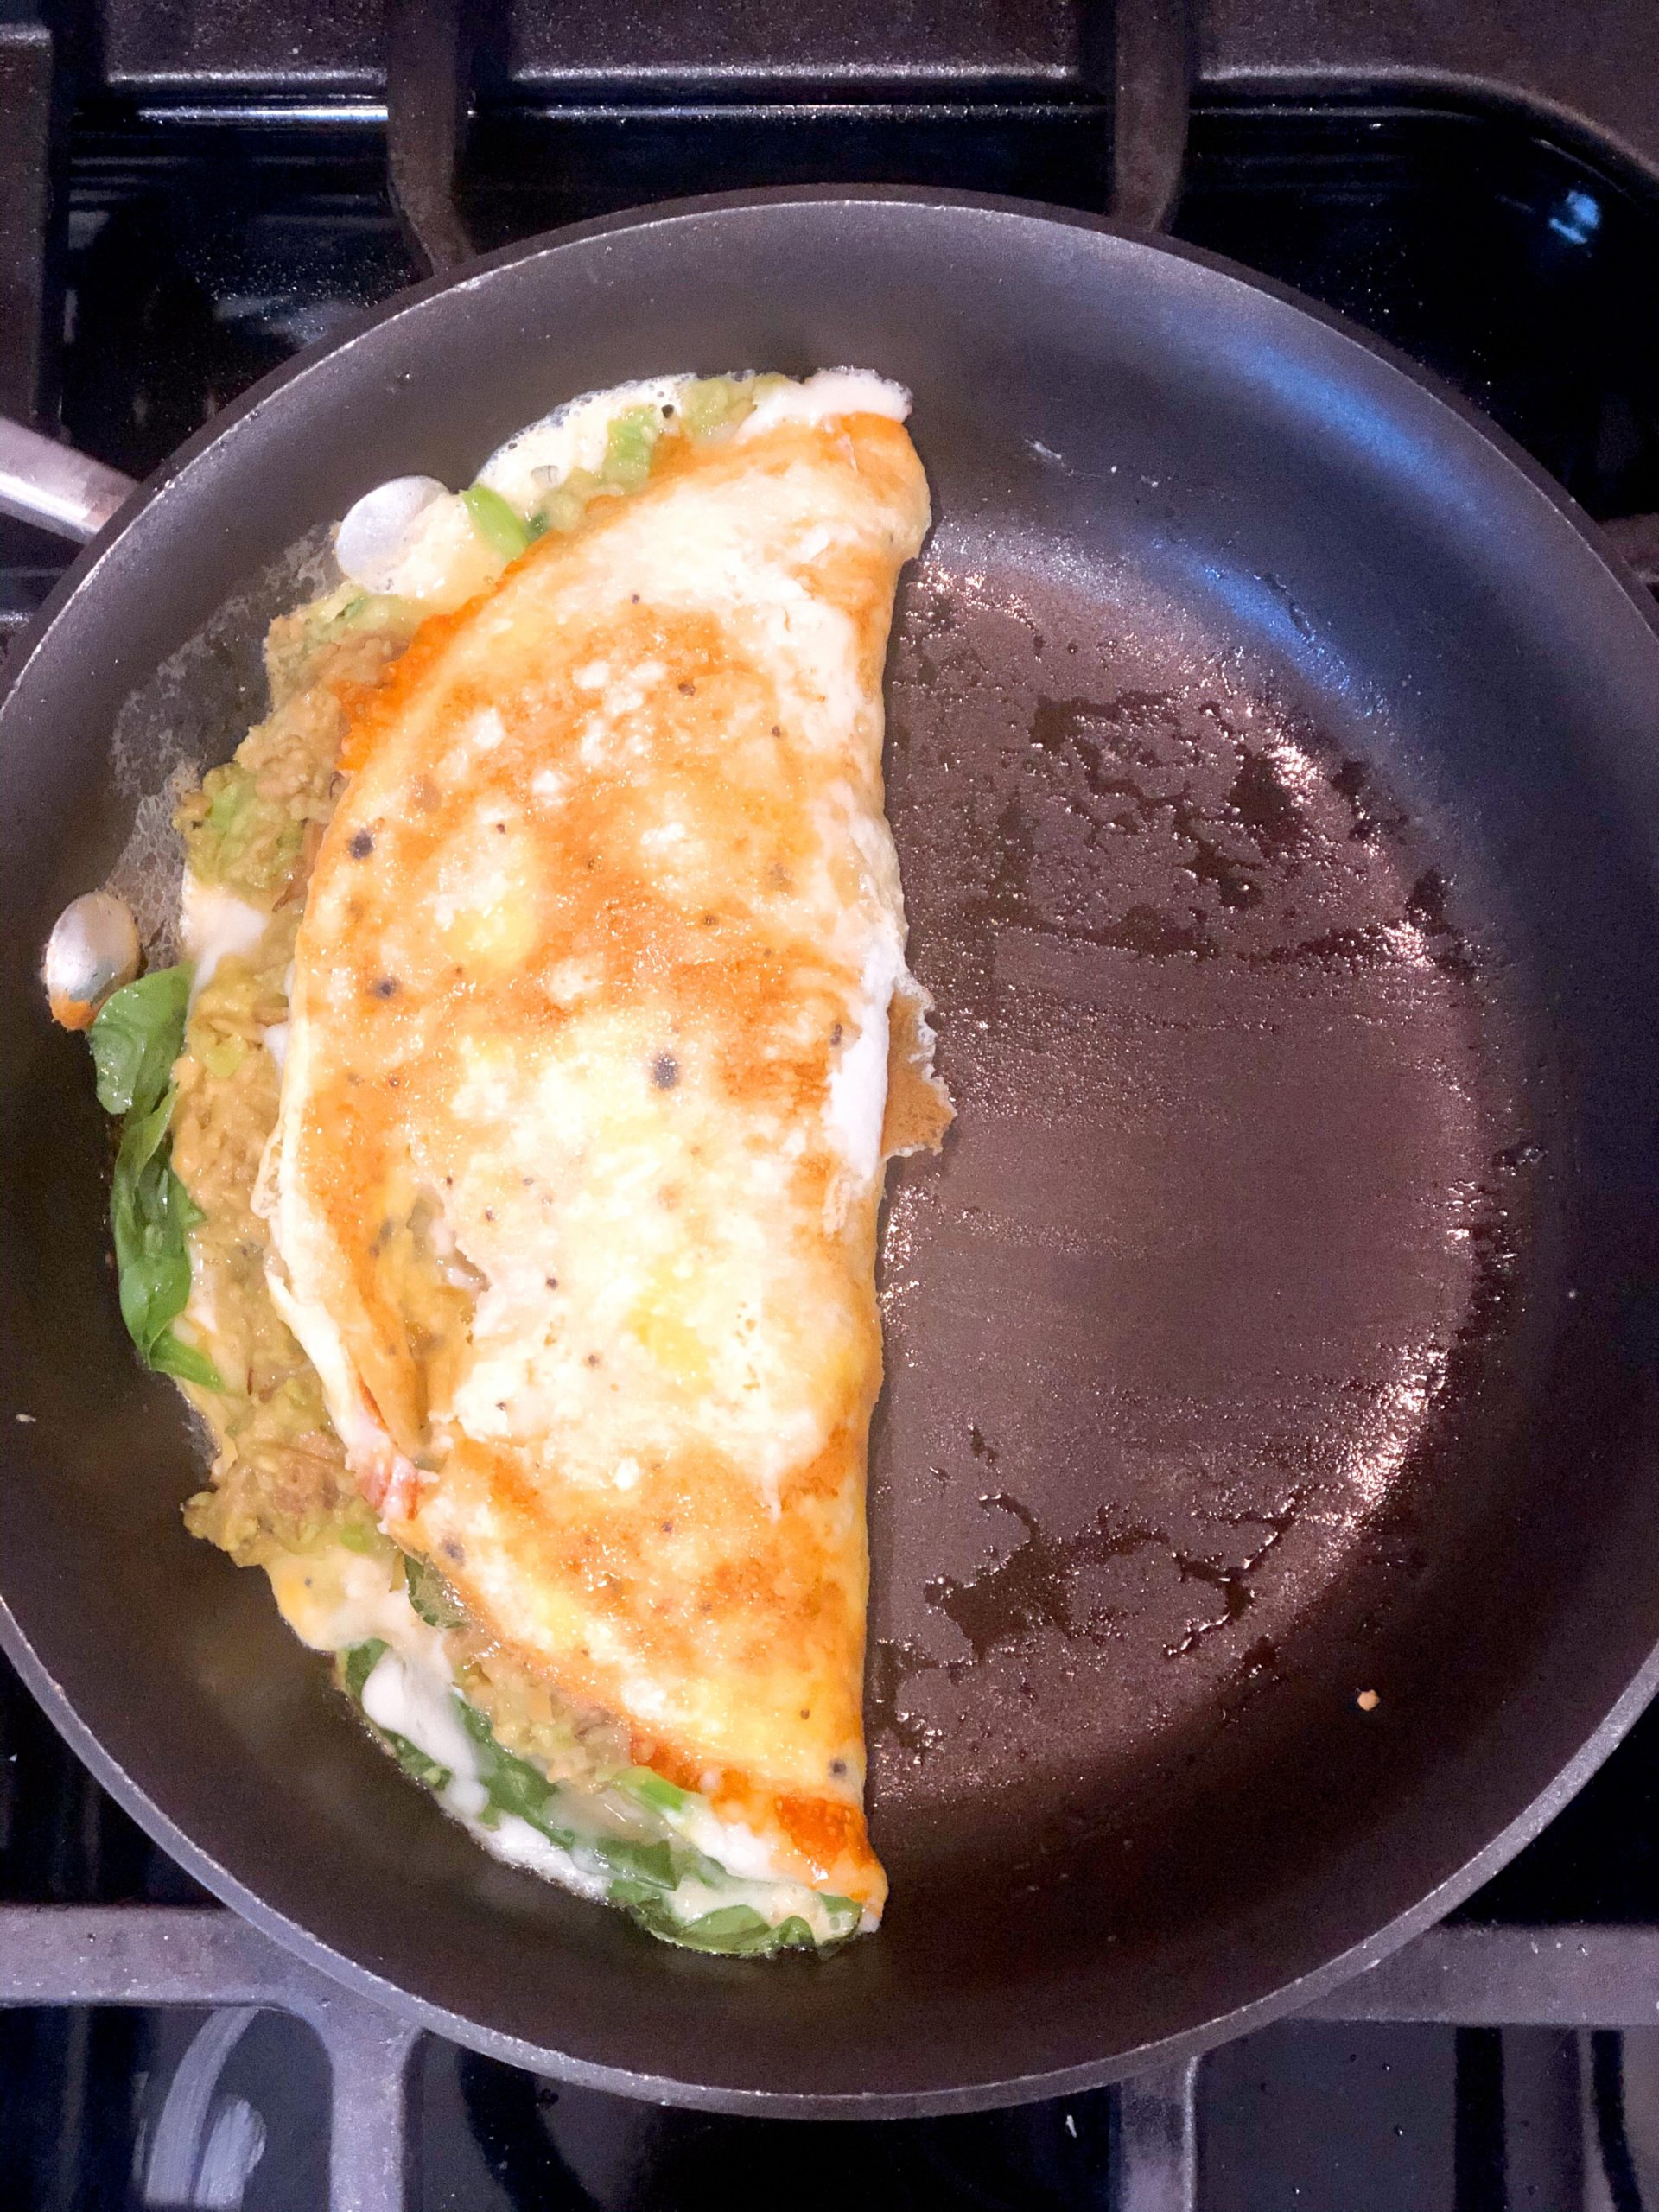 omelette folded over in a frying pan to create a half moon